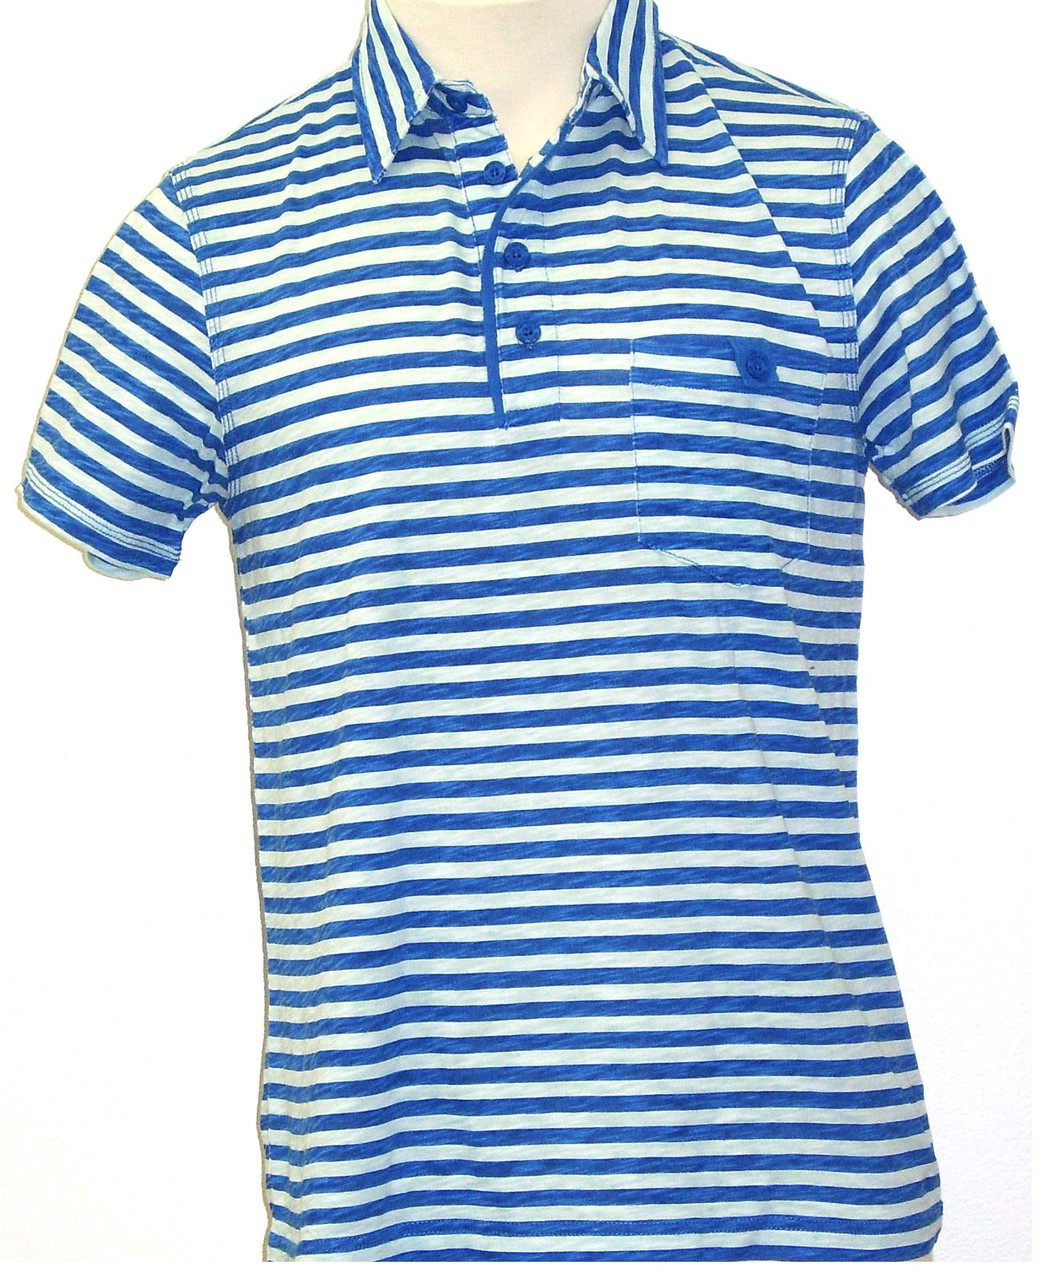 3efcd8c37cdf Generra Collection Clothing Second Skin Clothes Men's Polo Shirt - Blue  with Light Blue Stripes